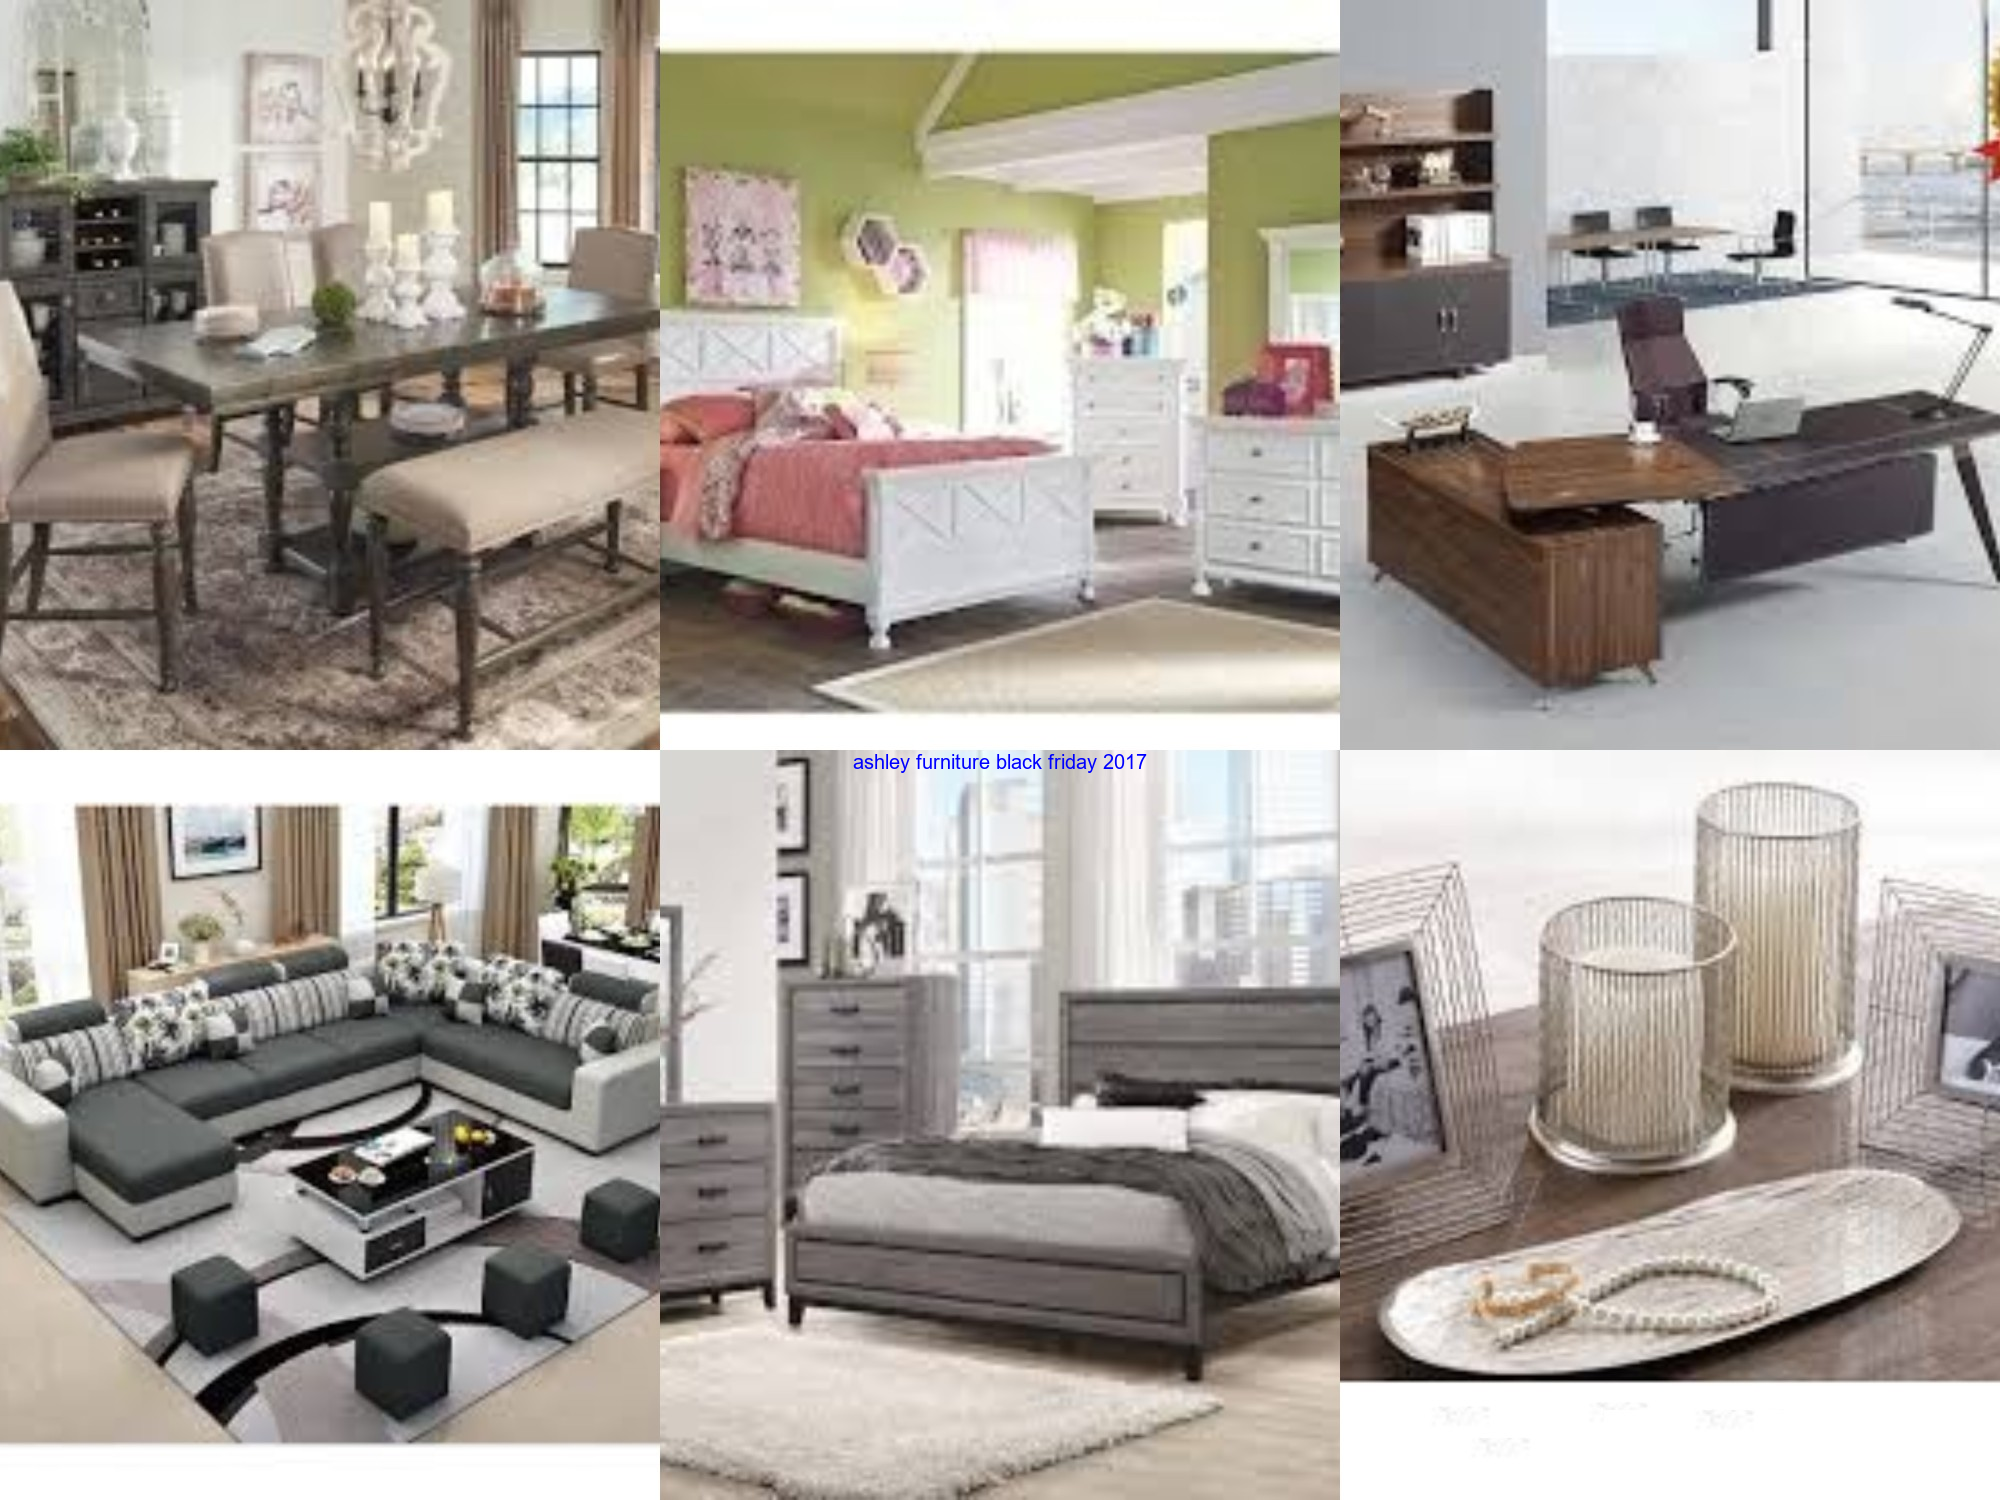 Ashley Furniture Black Friday 2017 I Might Suggest One To Visit